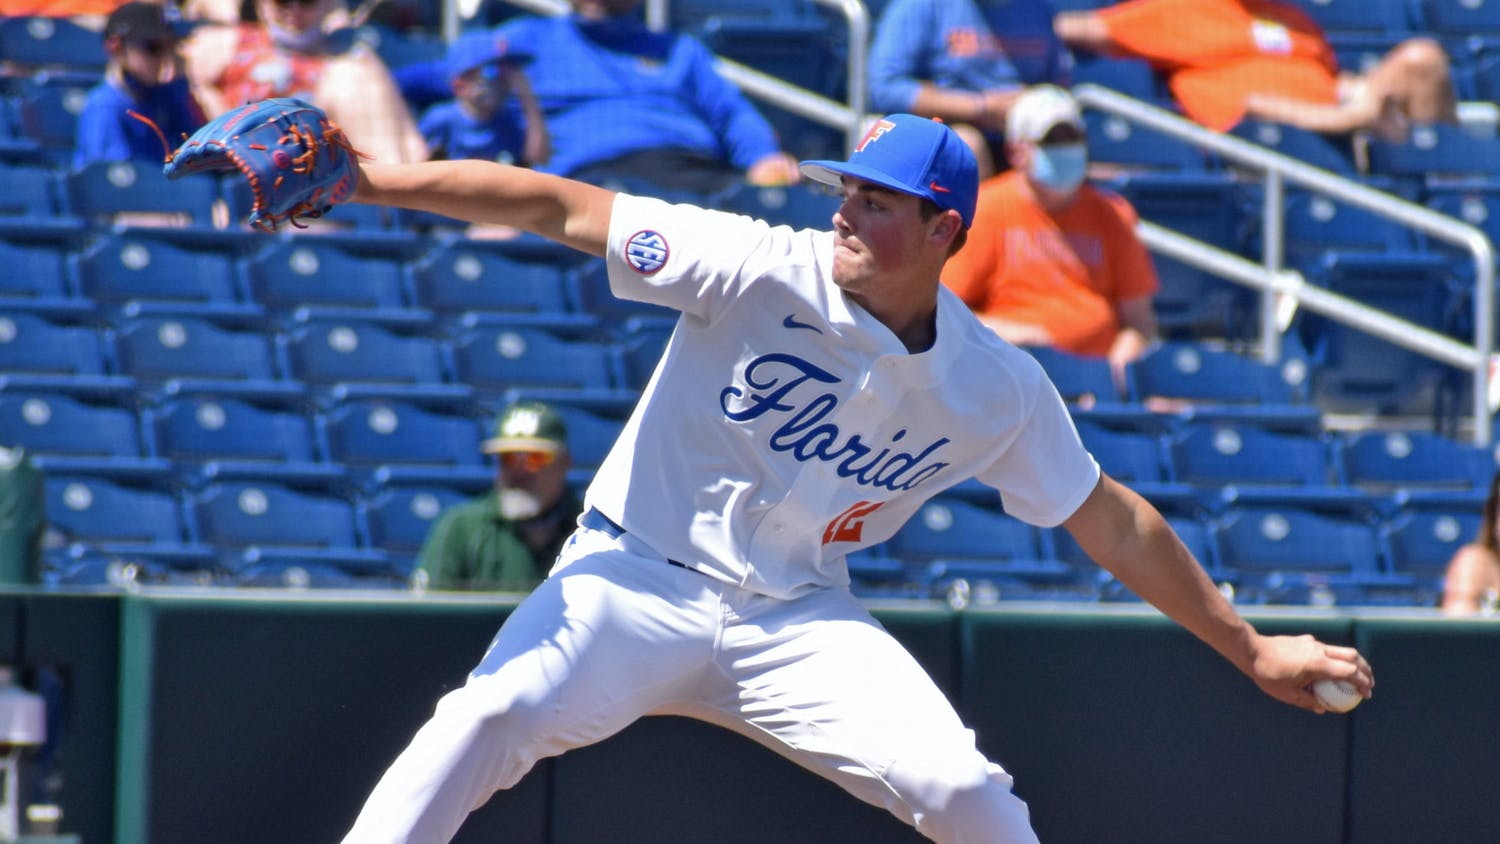 The Gators look to continue a run as they head on the road to a conference weekend series against Auburn. Photo from UF-Jacksonville game March 14.